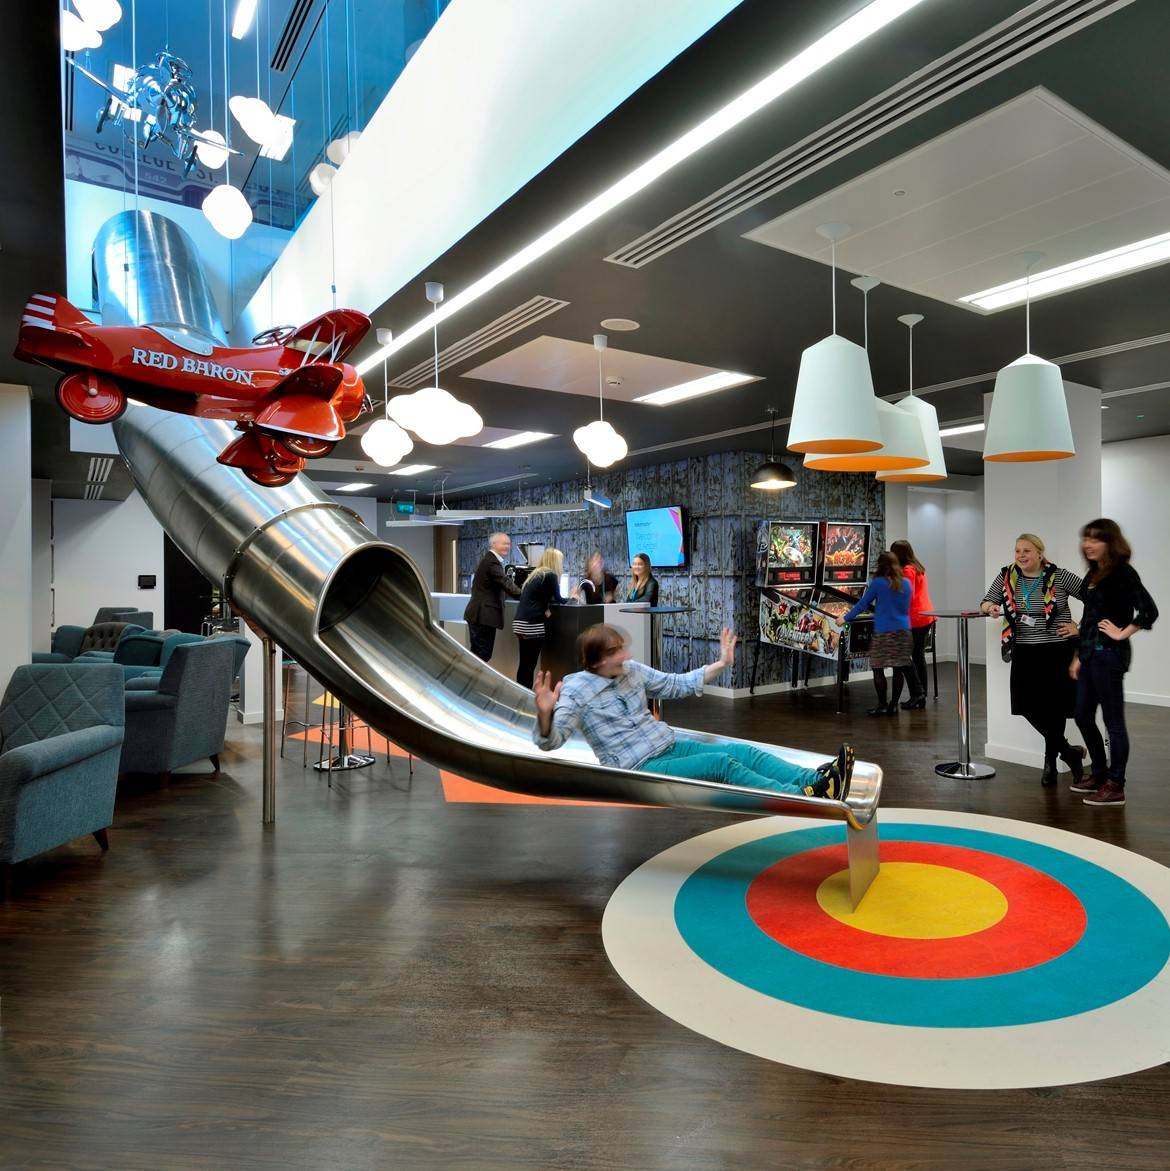 Seven reasons why this will not be the office of the future